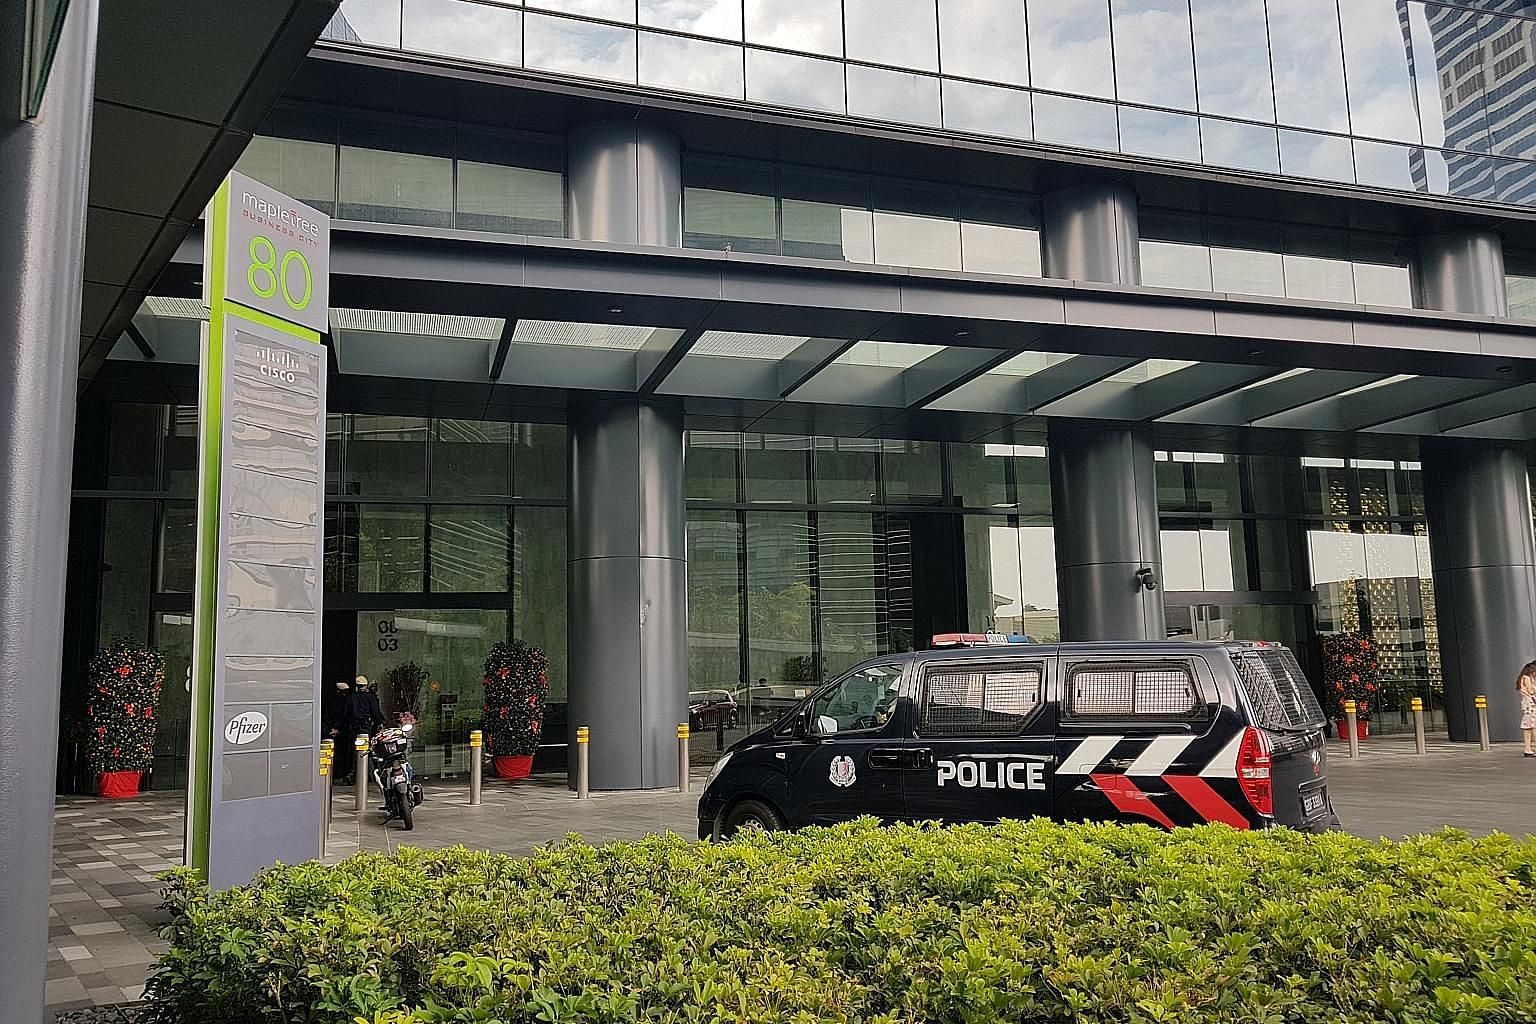 A police vehicle was spotted in the driveway of Mapletree Business City yesterday, where Wirecard has an office.